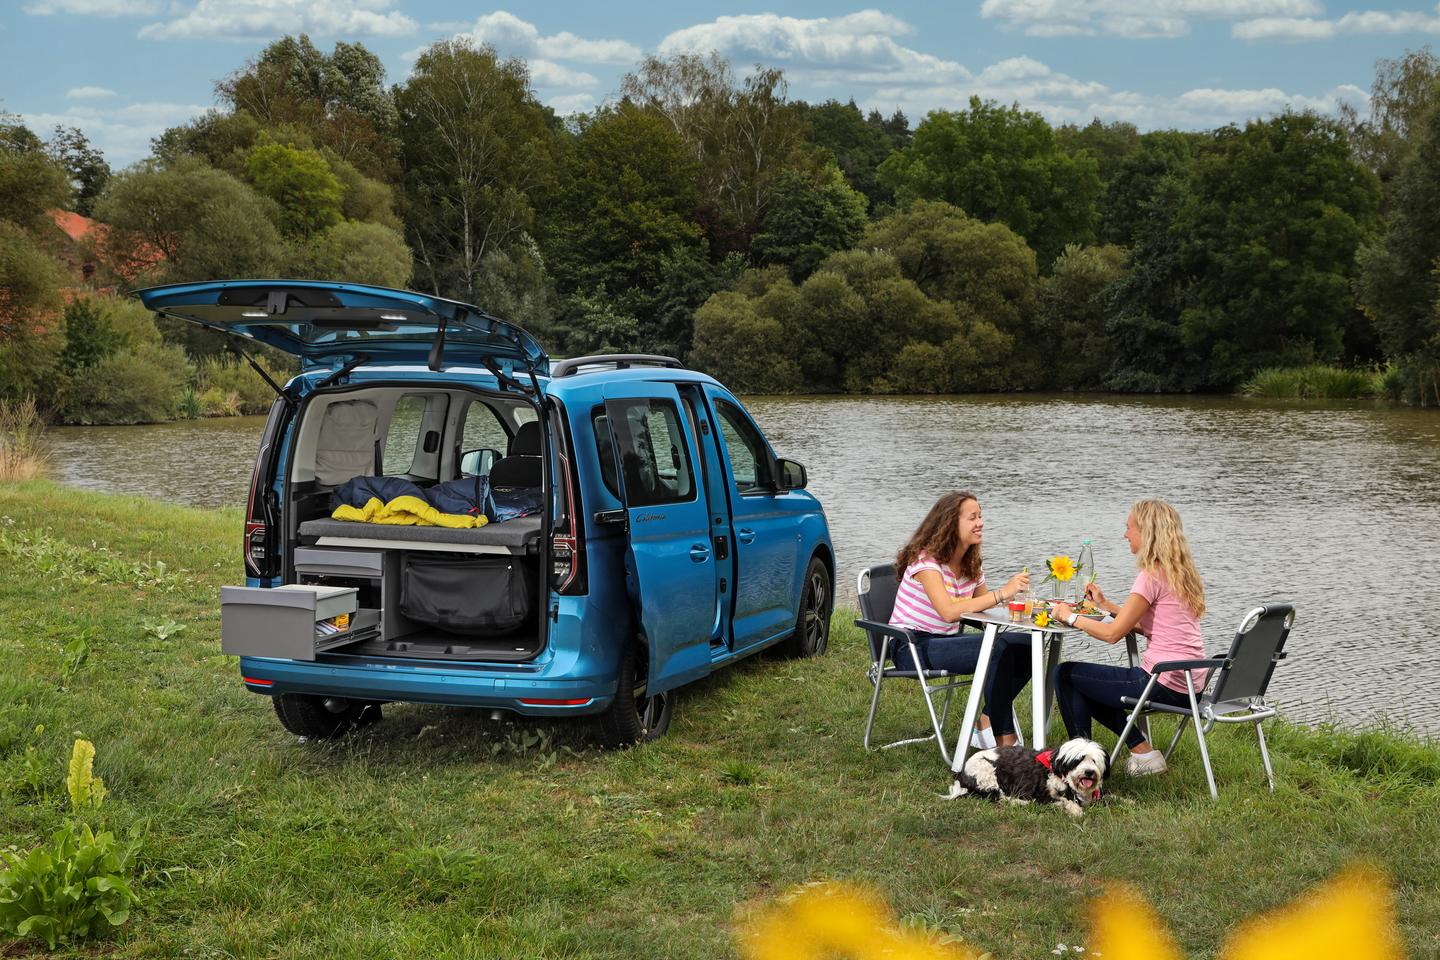 """Volkswagen adds a """"mini kitchen"""" to transform the outgoing Caddy Beach sleeper van into a Caddy California camper van"""